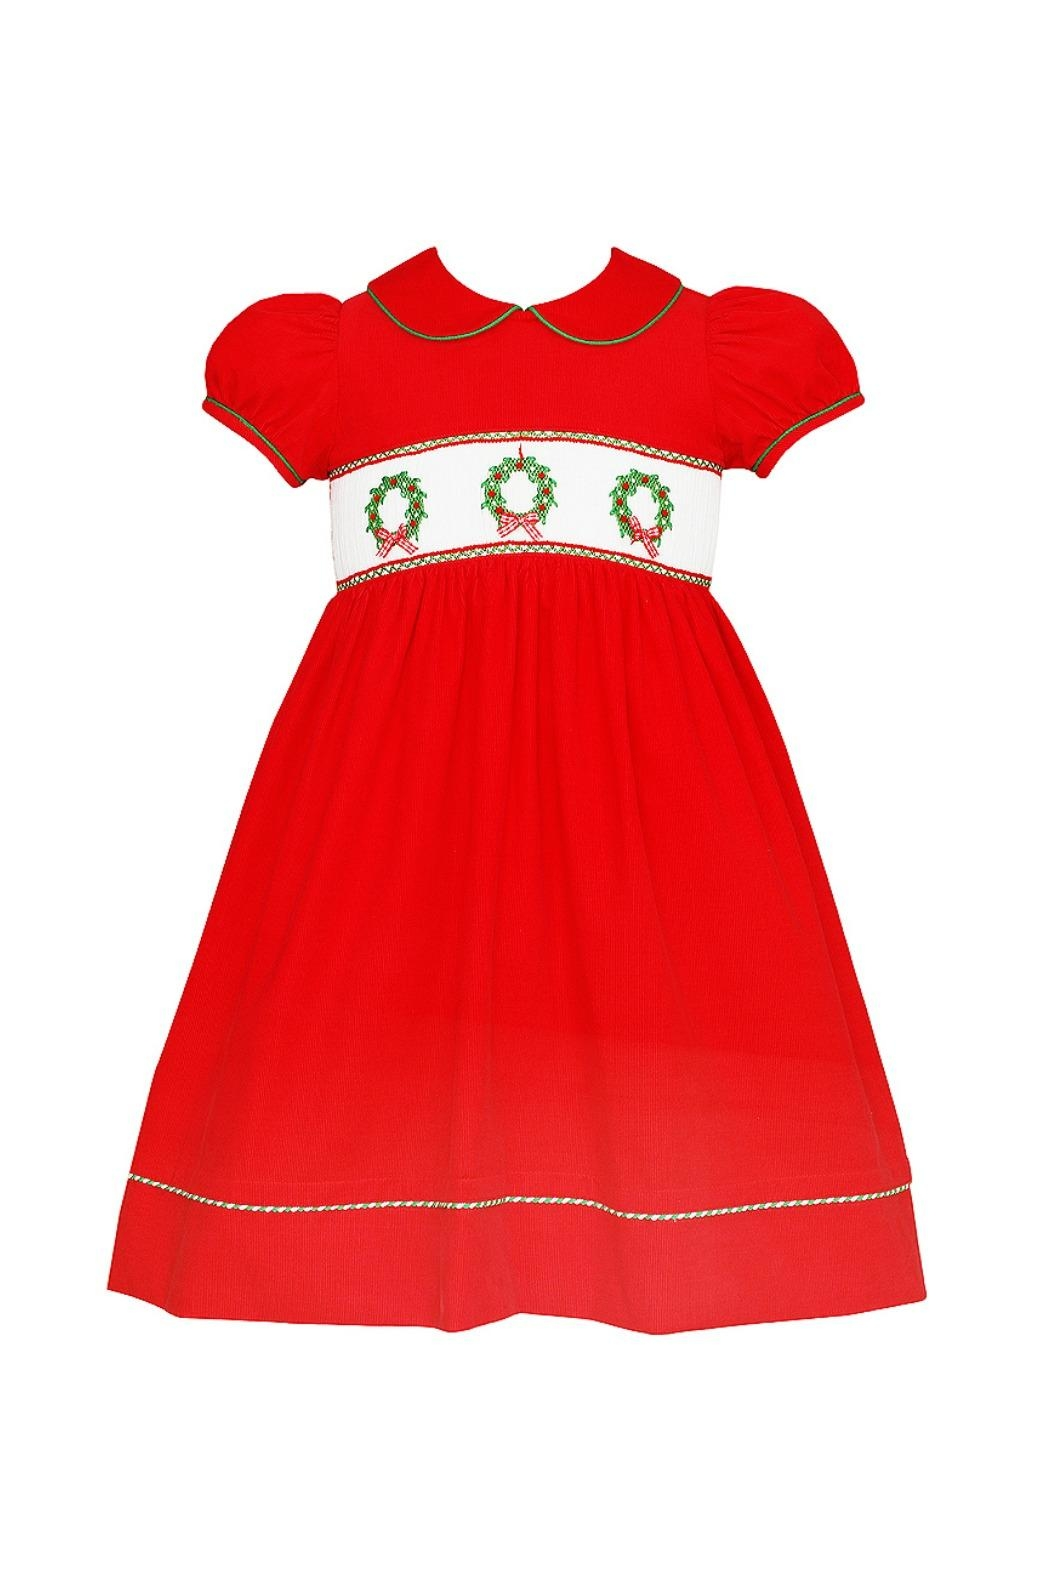 ANAVINI Red-Corduroy-Smocked-Christmas-Wreath-Dress - Front Cropped Image